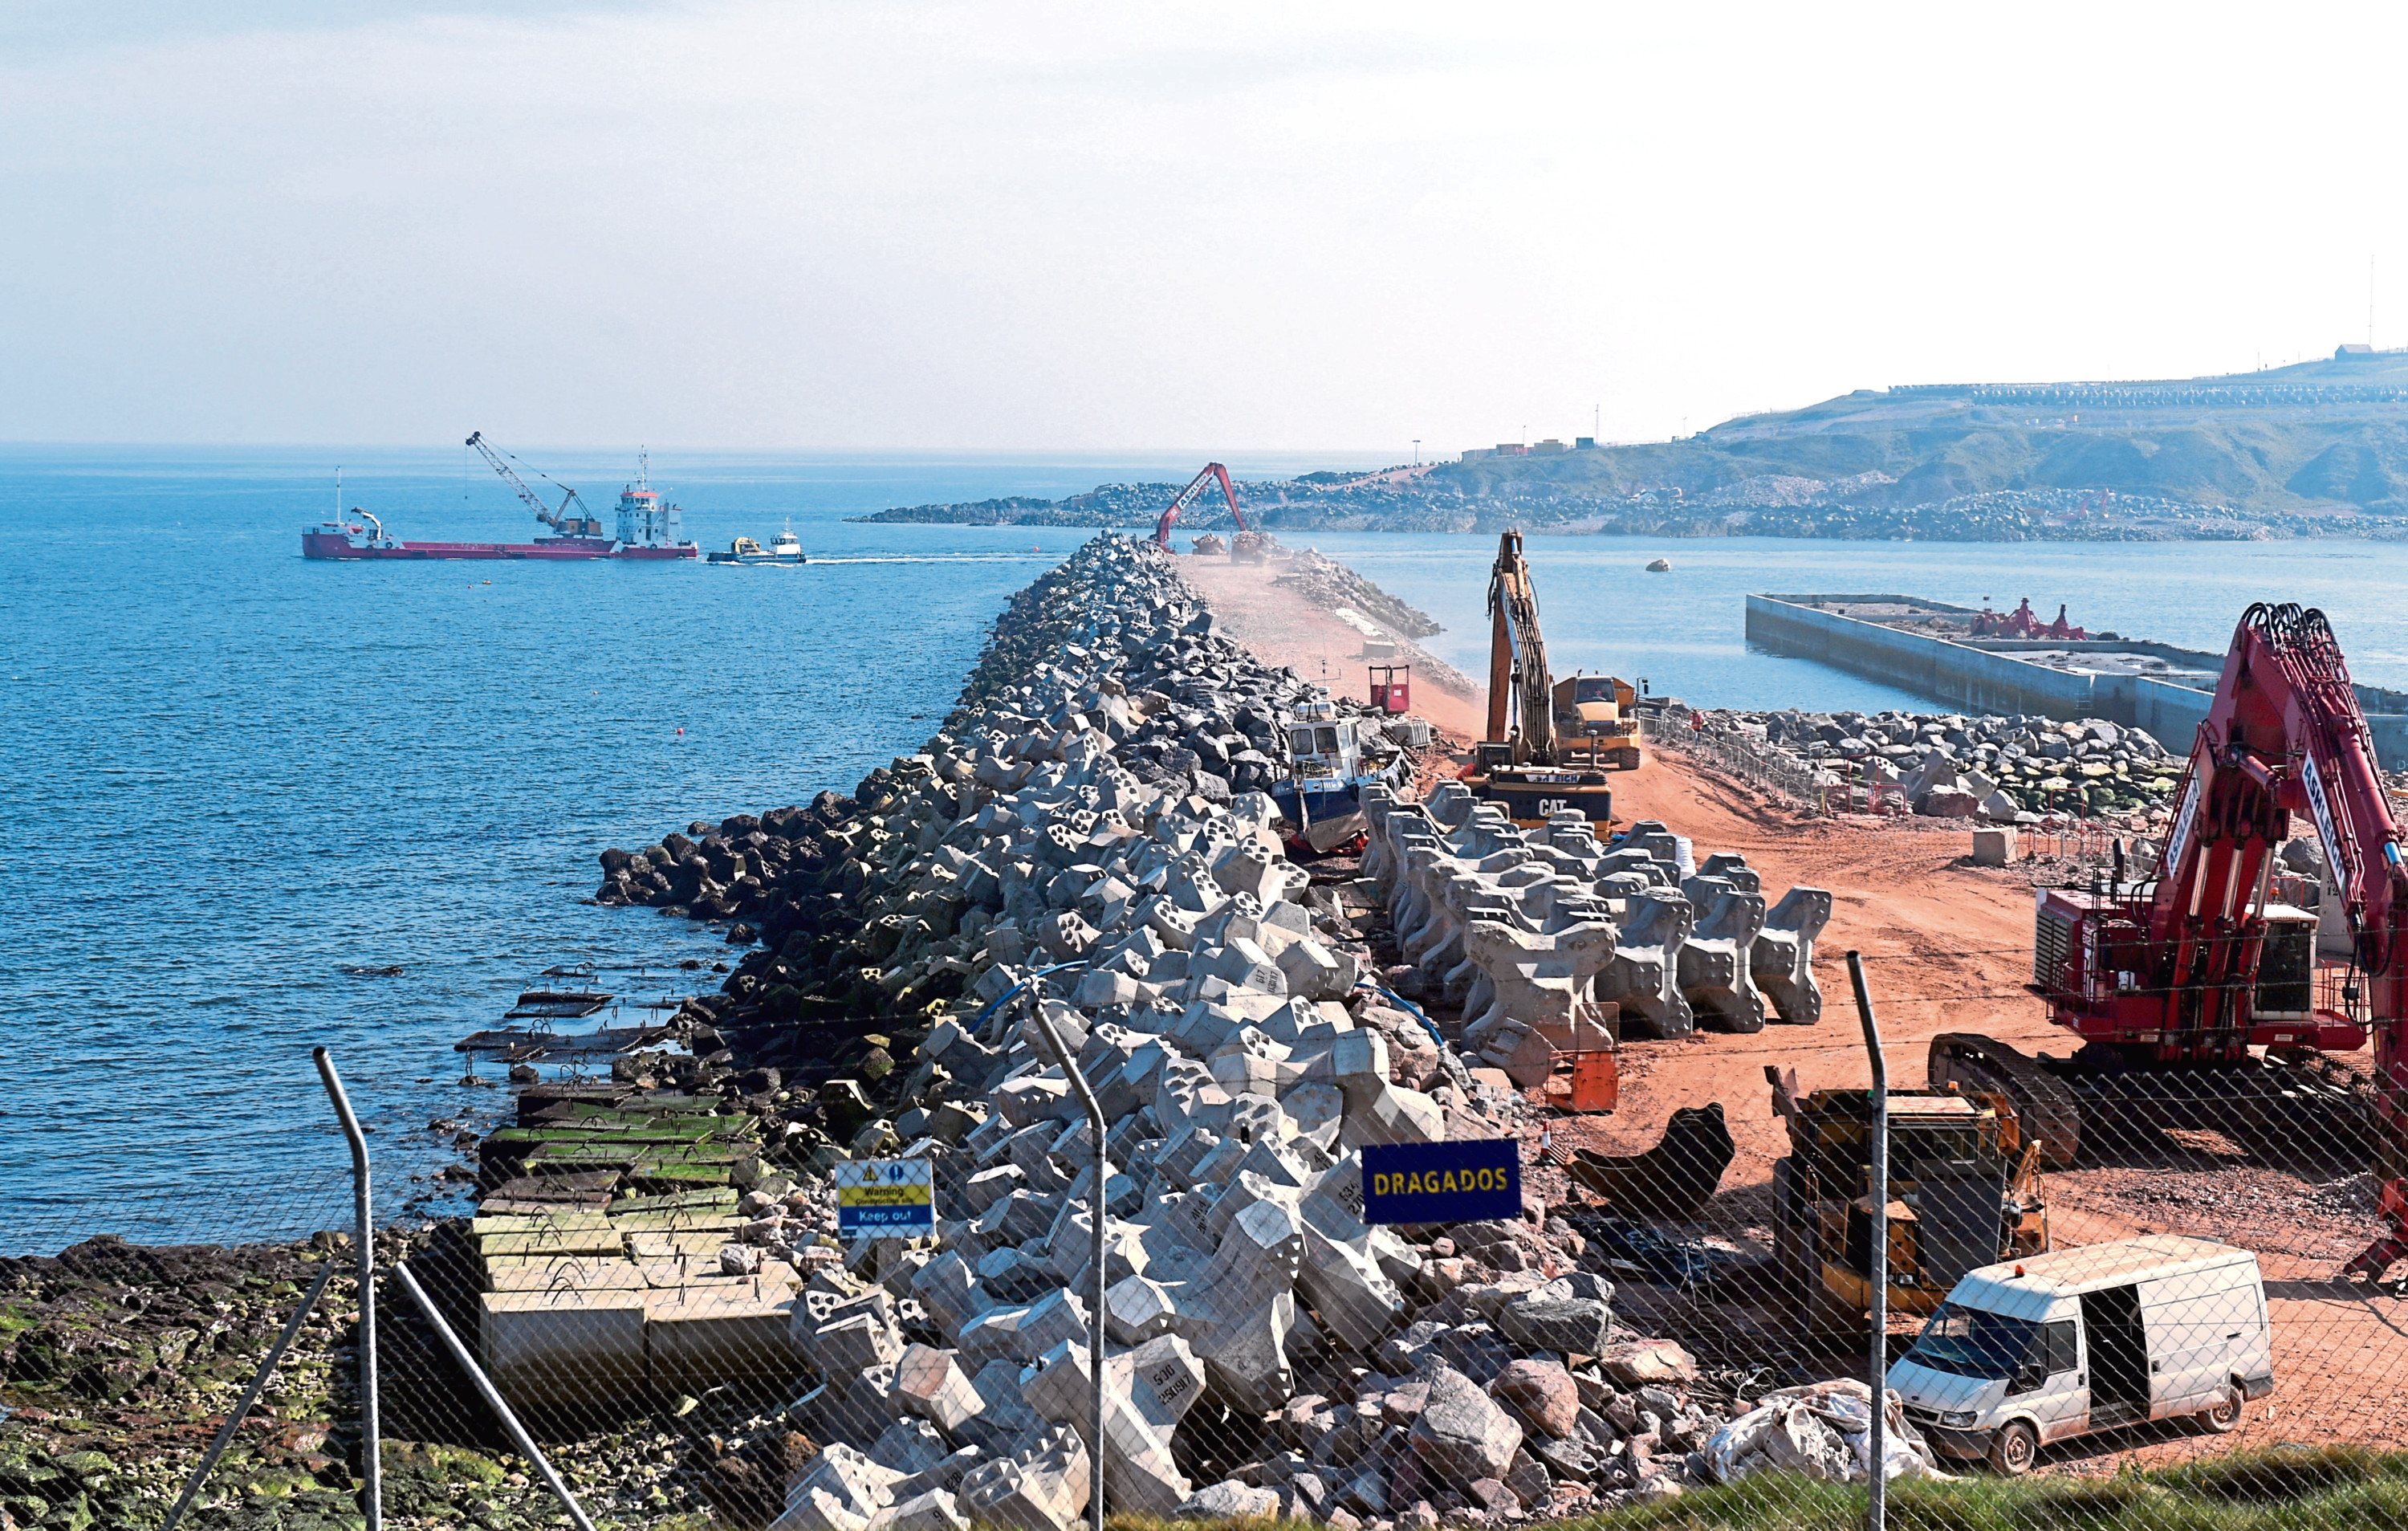 Work to construct the new harbour is ongoing